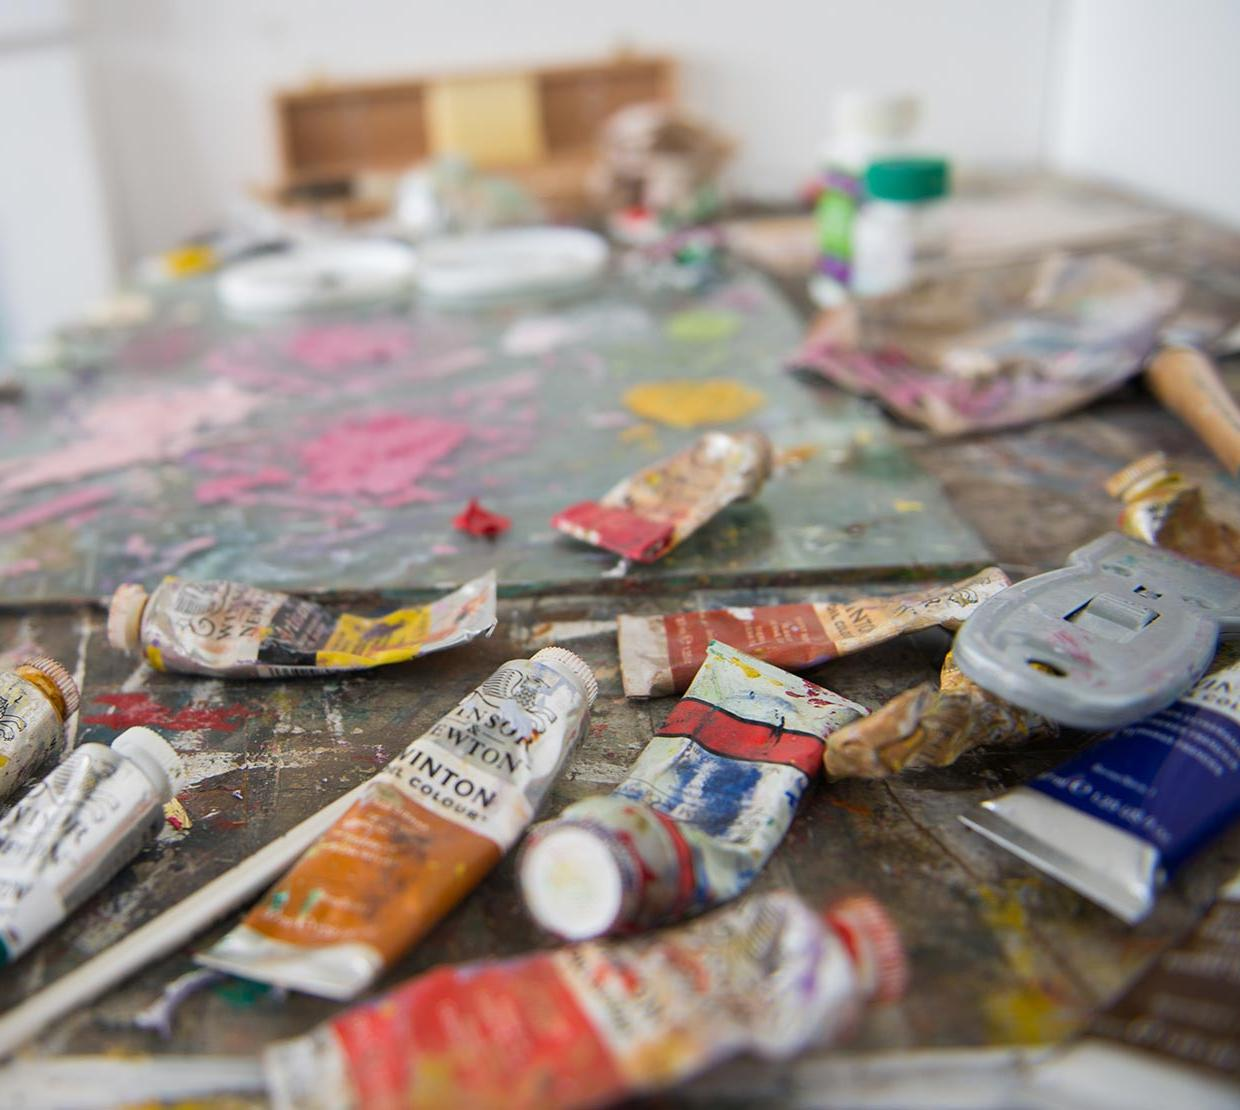 paint tubes and palettes sitting on studio table